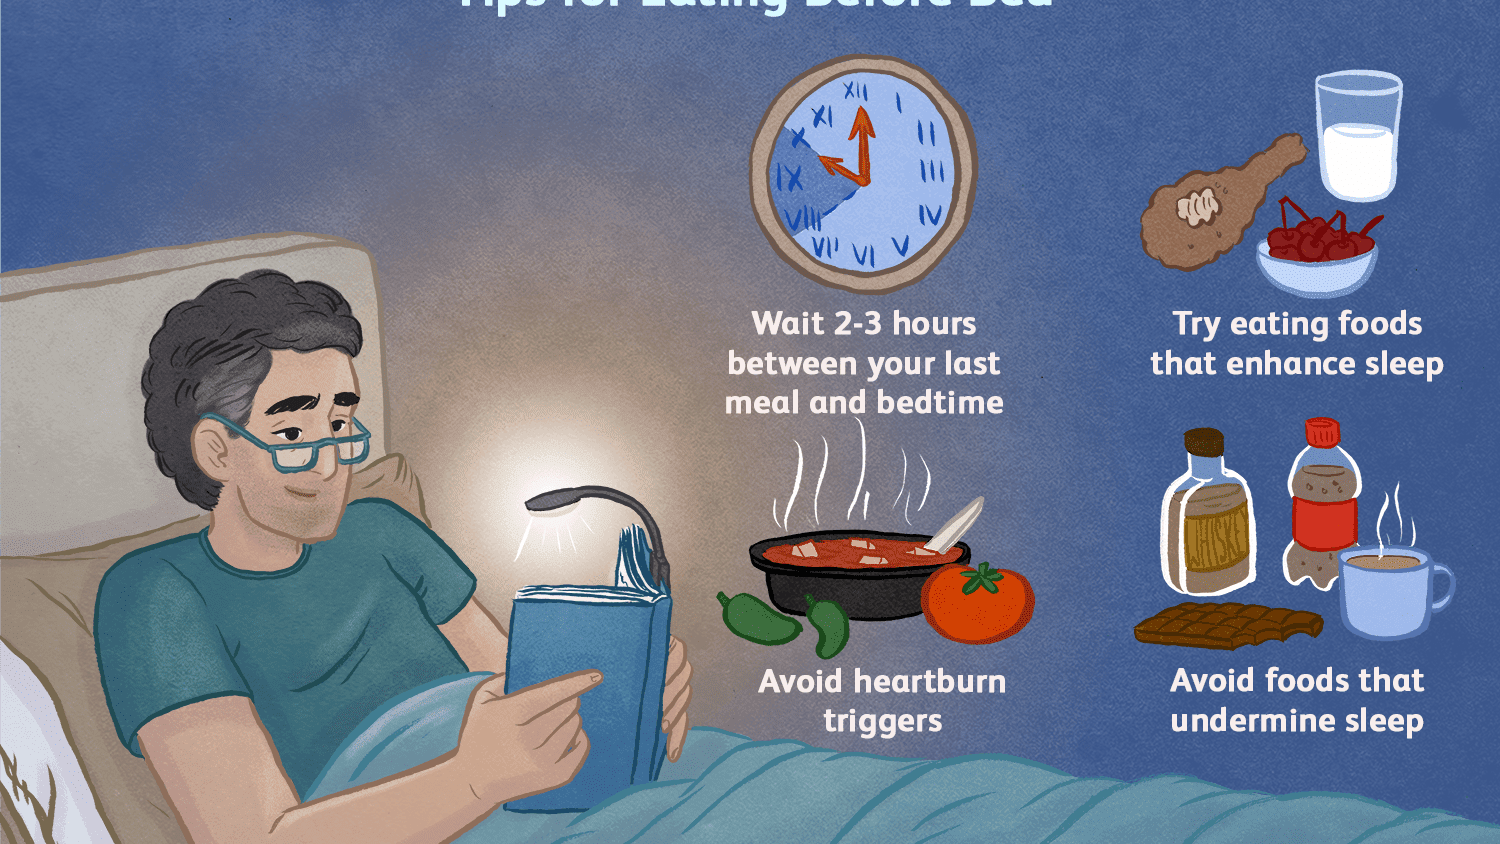 The link between inadequate sleep and digestive problems